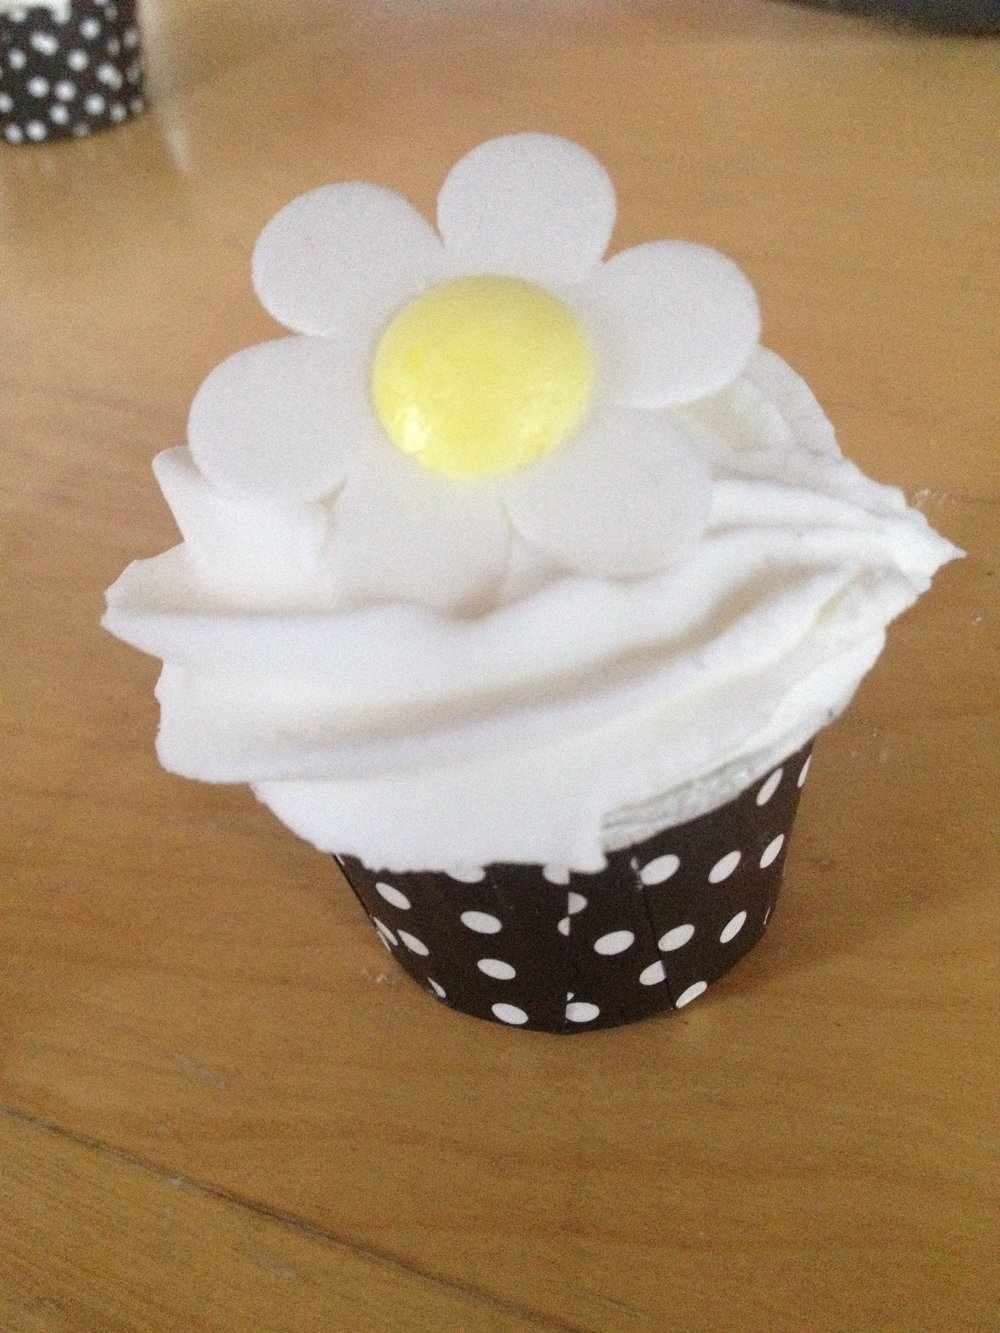 Daisy cupcake bath bomb made at Soap School